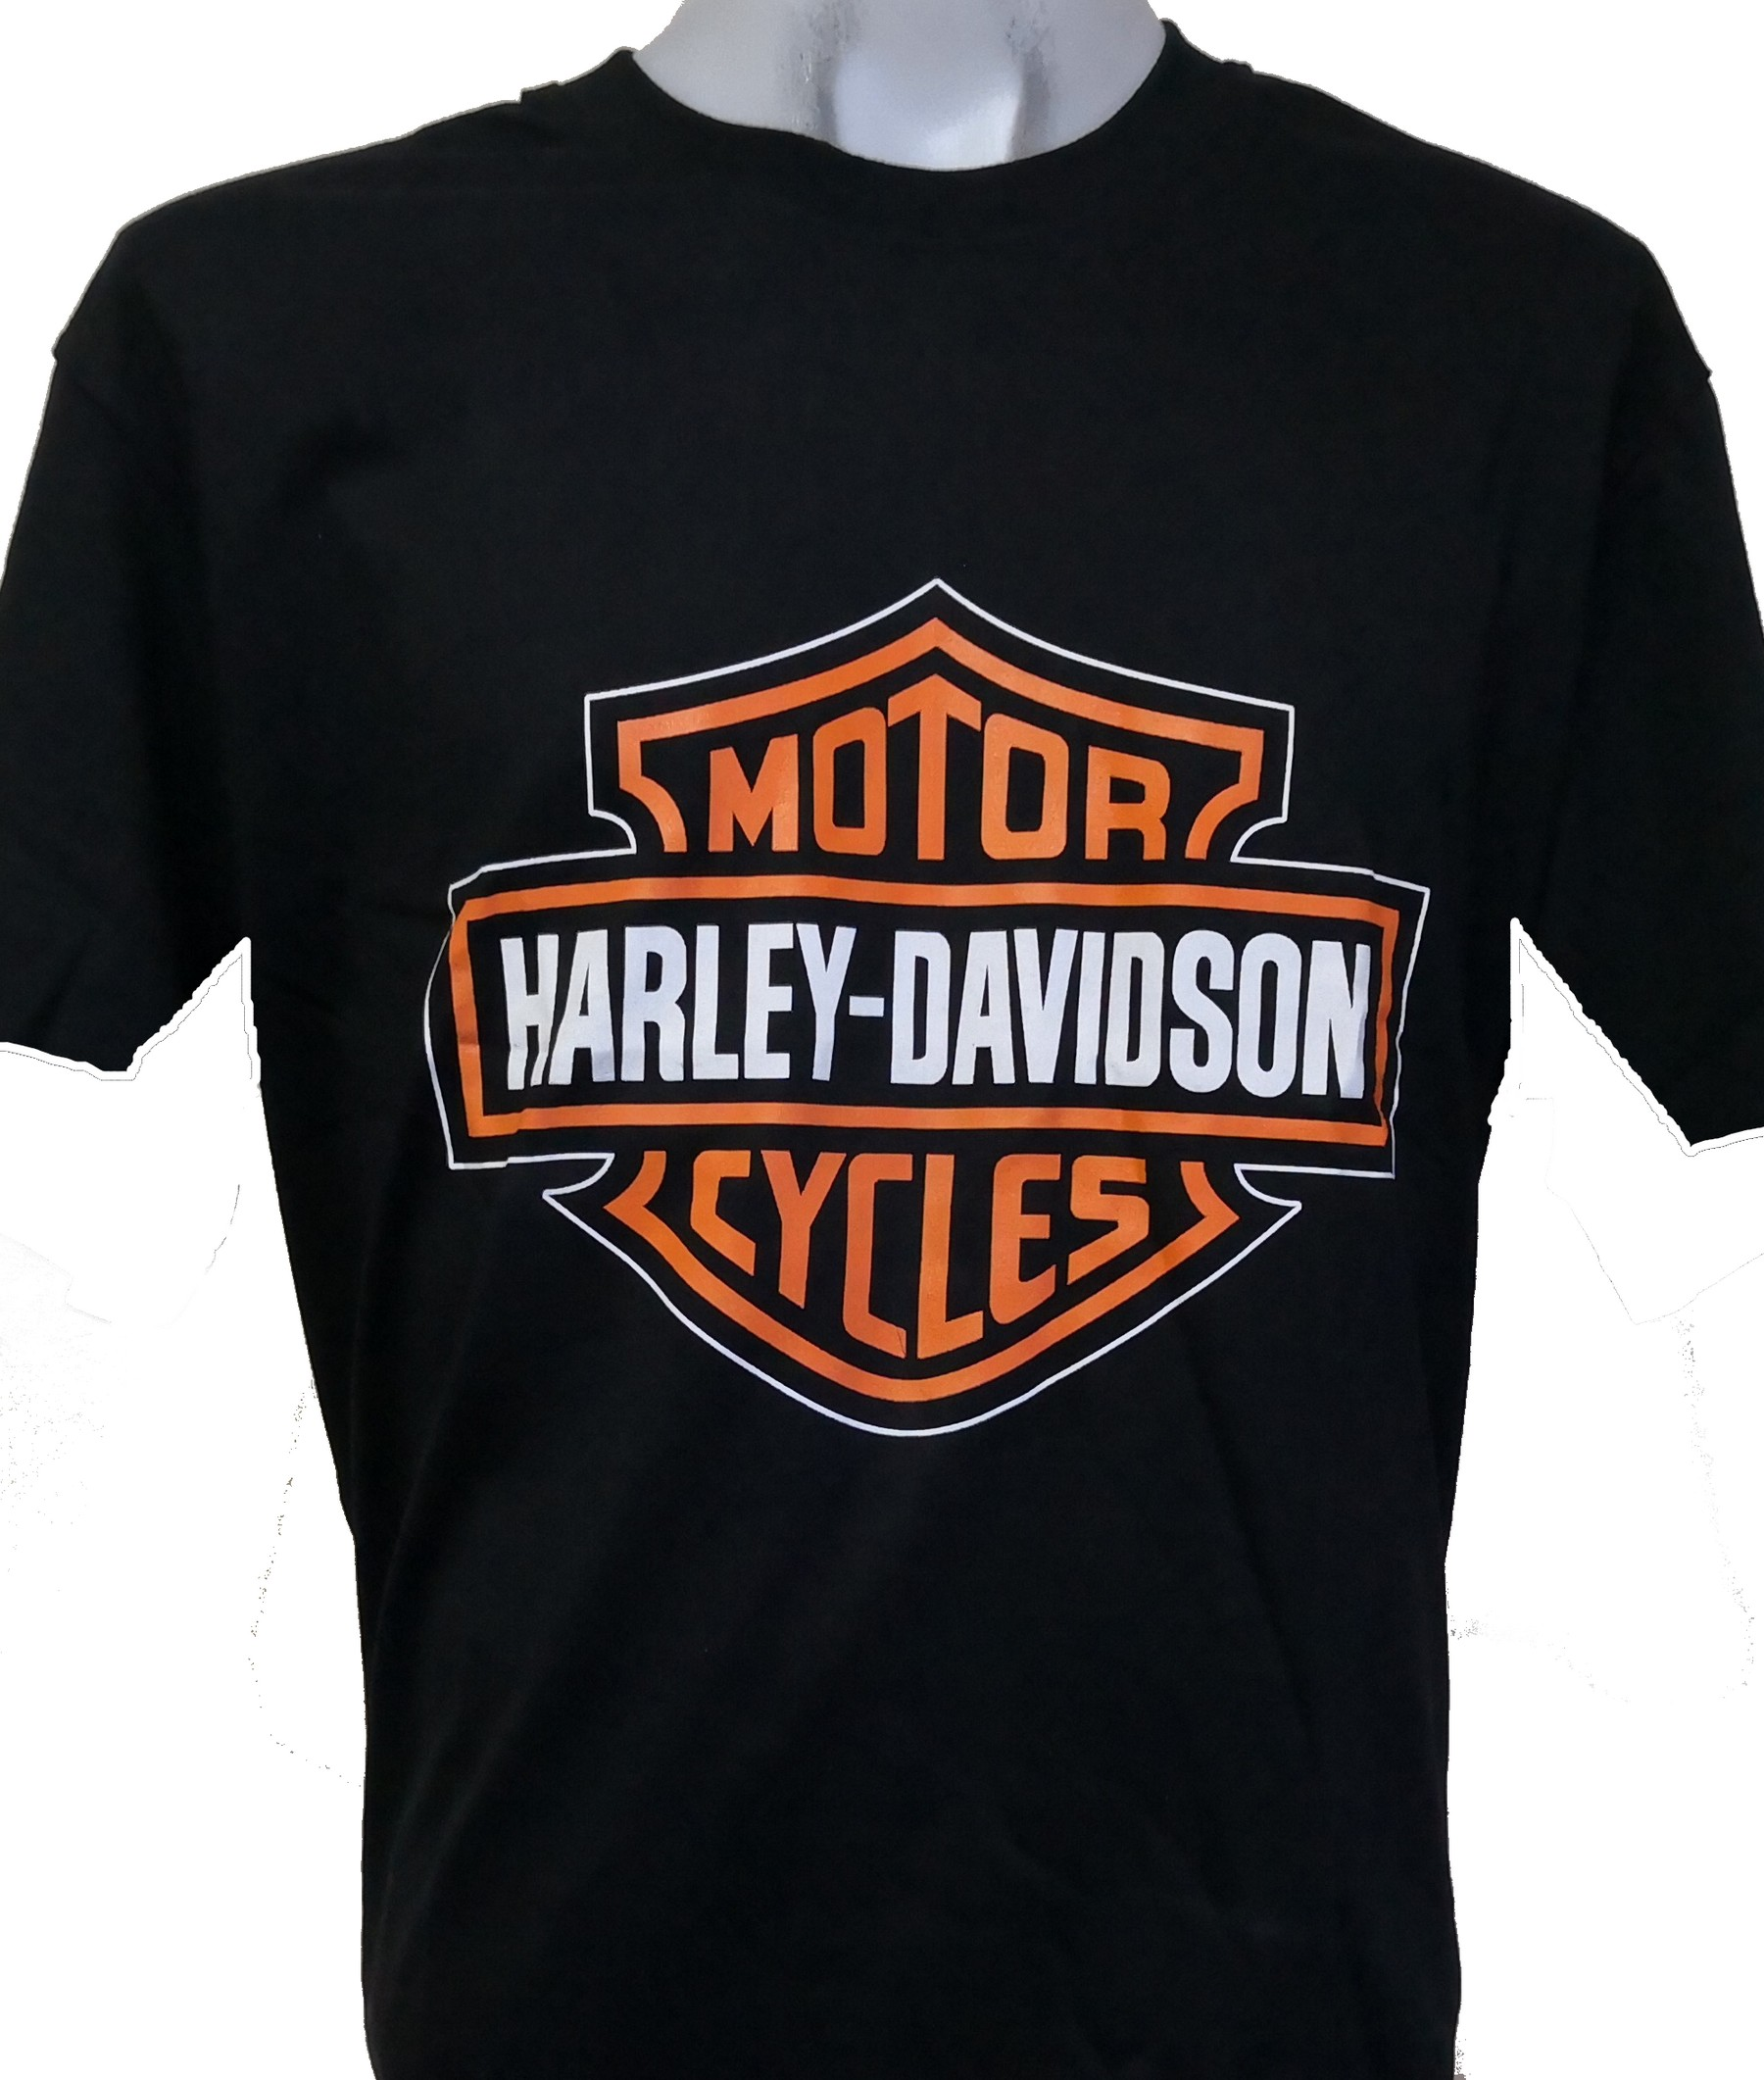 harley davidson t shirt size xl roxxbkk. Black Bedroom Furniture Sets. Home Design Ideas